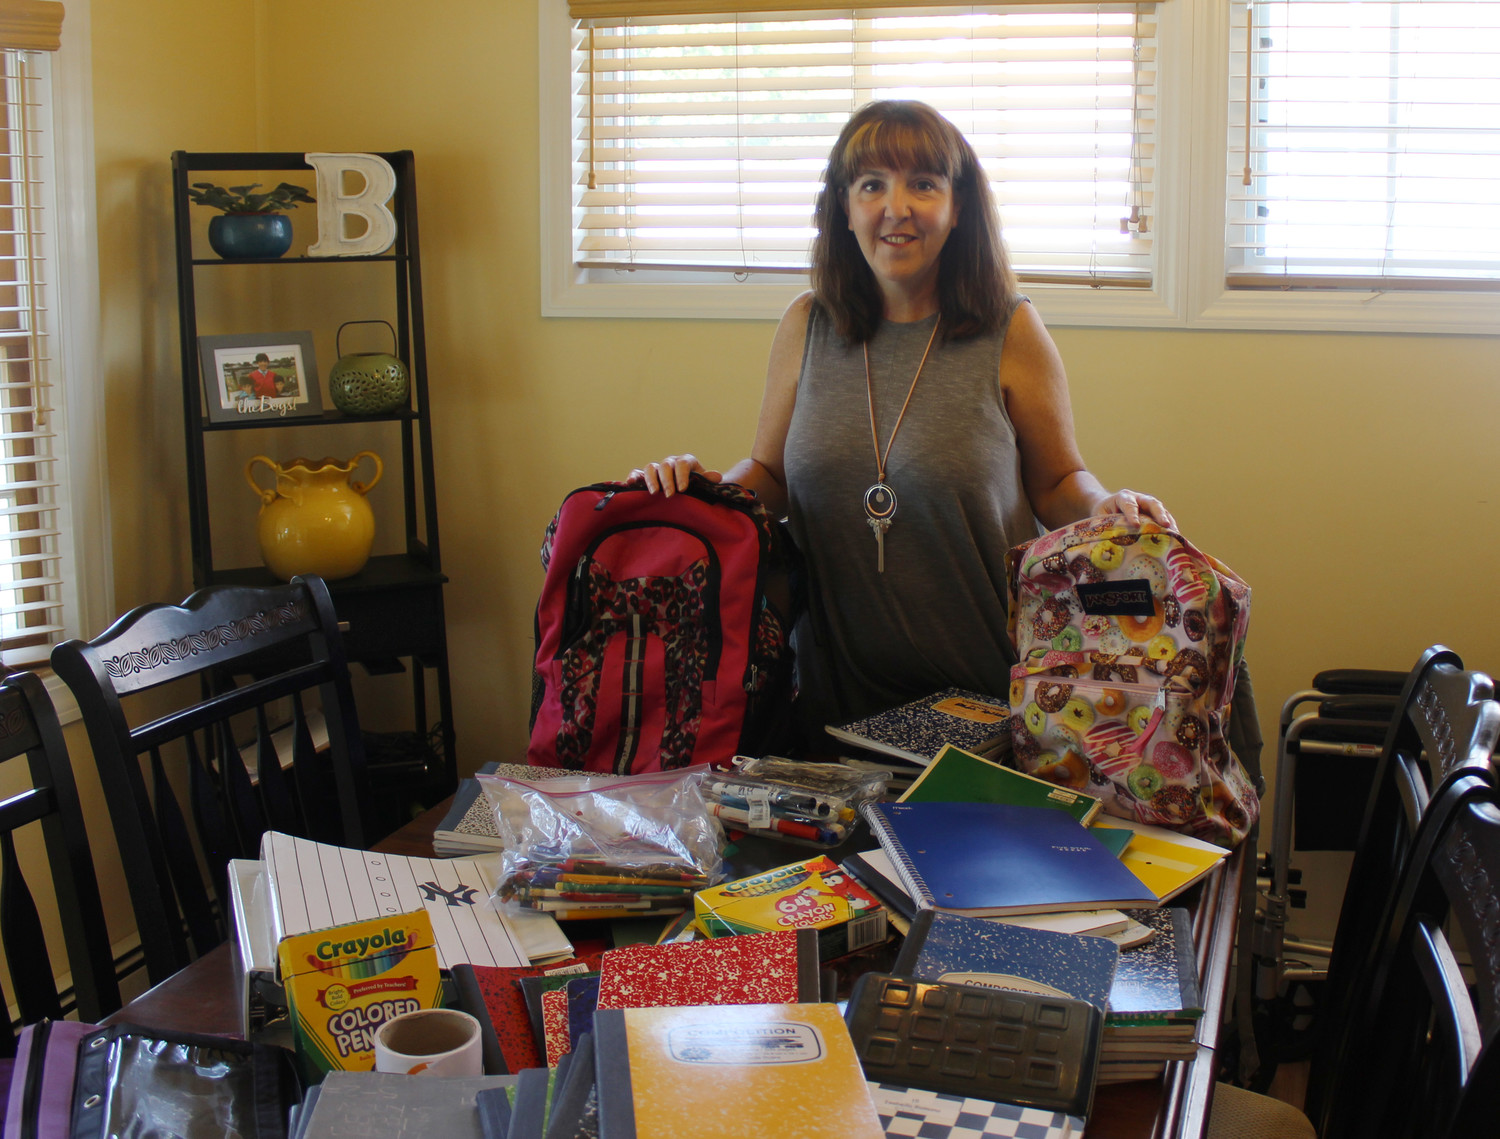 Allyson Benowitz, of Westbury, has been collecting school supplies that she will be donating to students in need this coming school year.